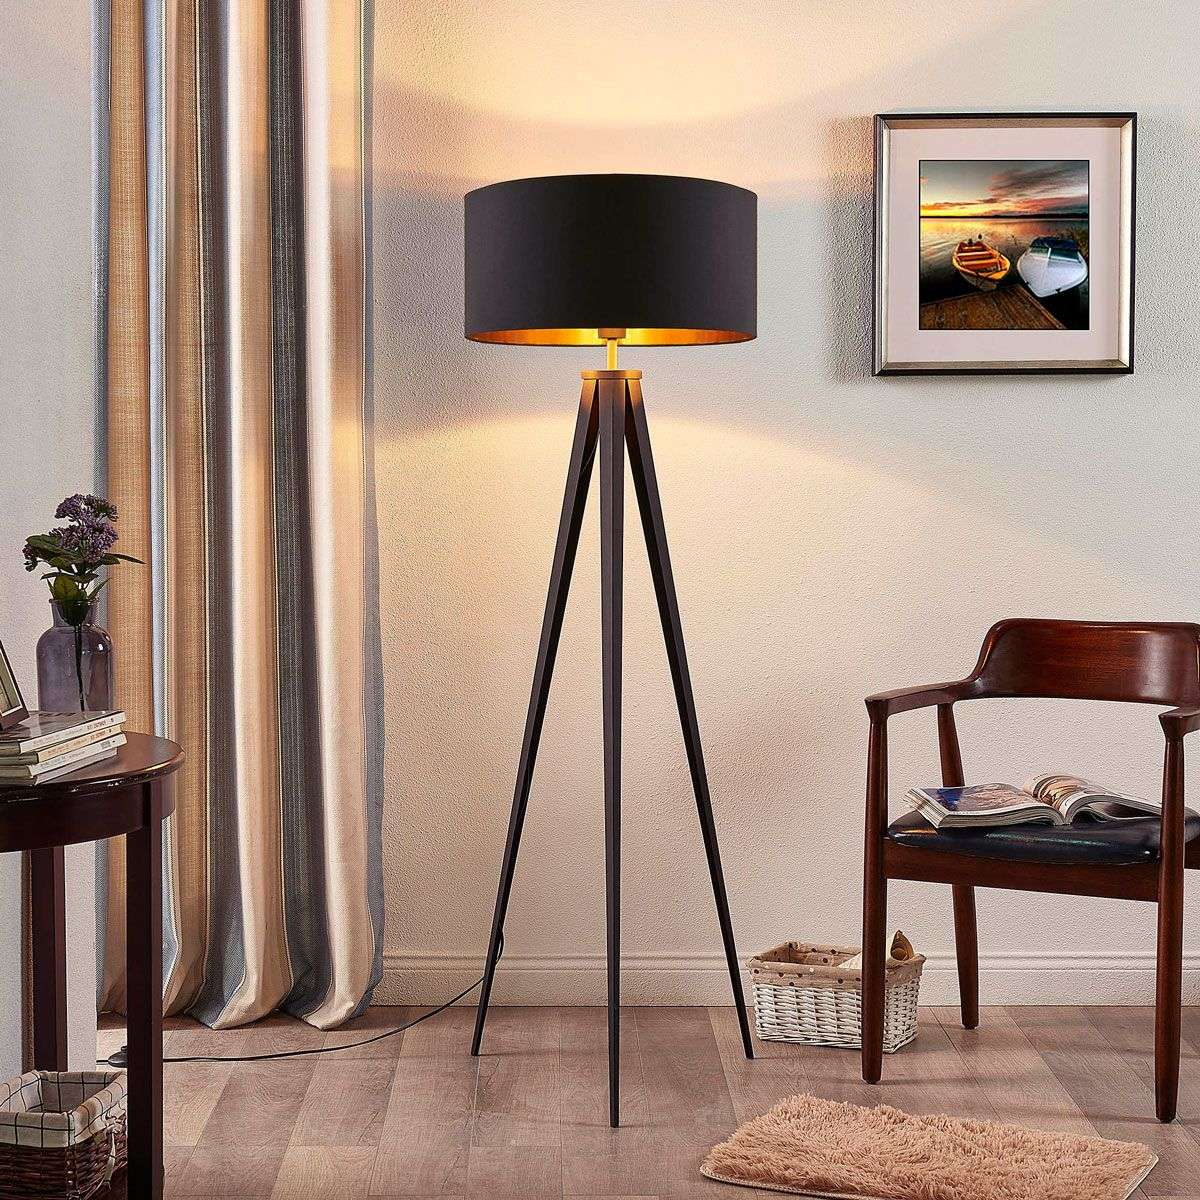 Black and gold floor lamp benik in a tripod look lights black and gold floor lamp benik in a tripod look 9621285 33 mozeypictures Images